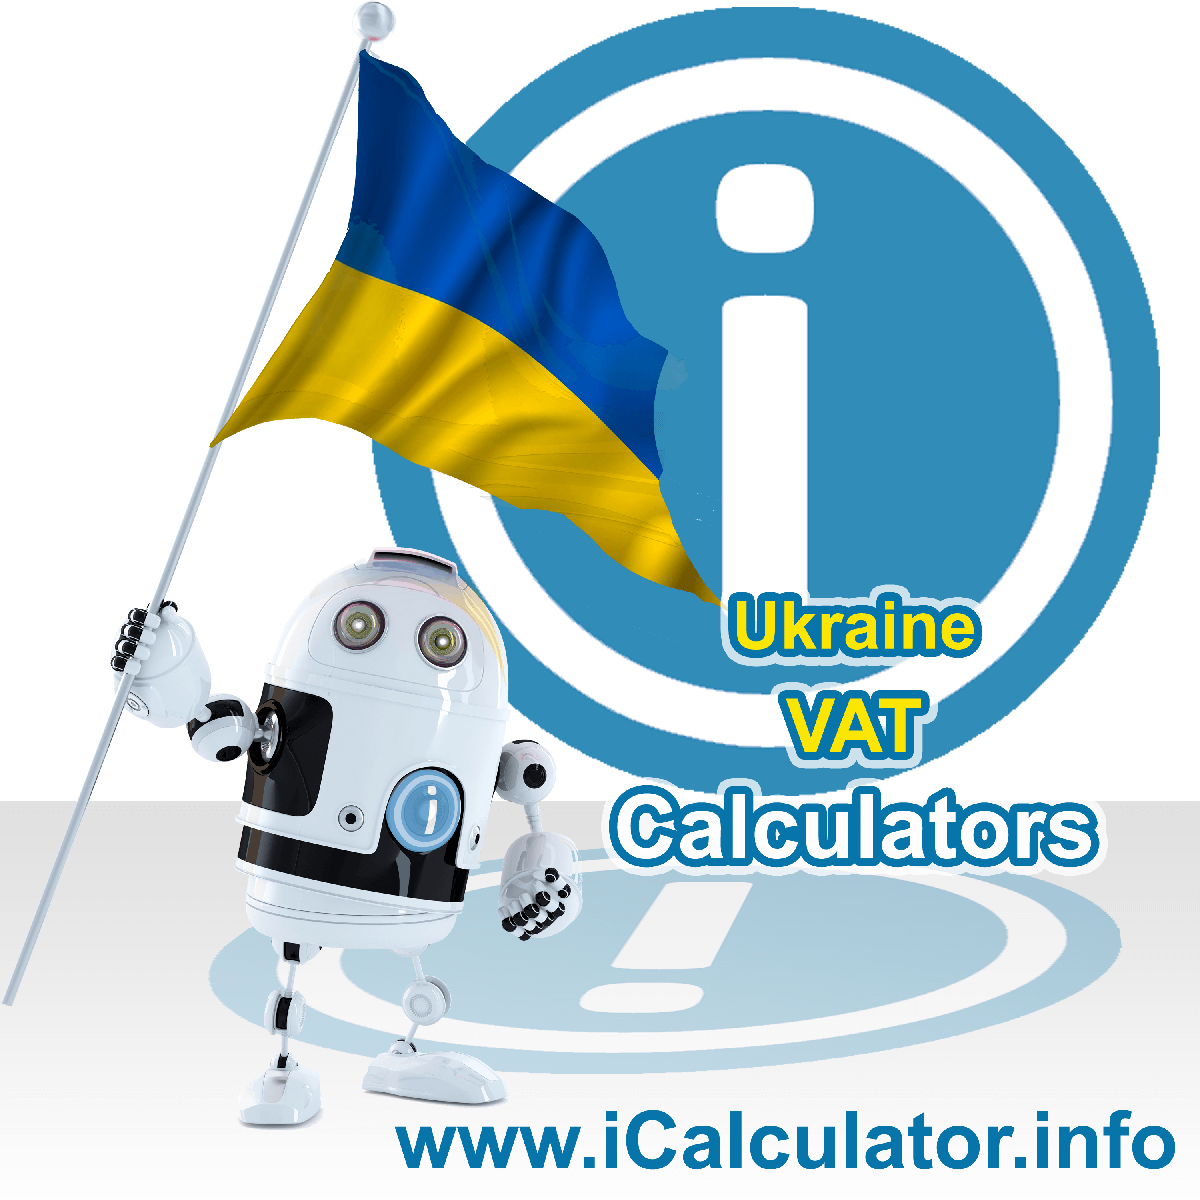 Ukraine VAT Calculator. This image shows the Ukraine flag and information relating to the VAT formula used for calculating Value Added Tax in Ukraine using the Ukraine VAT Calculator in 2020